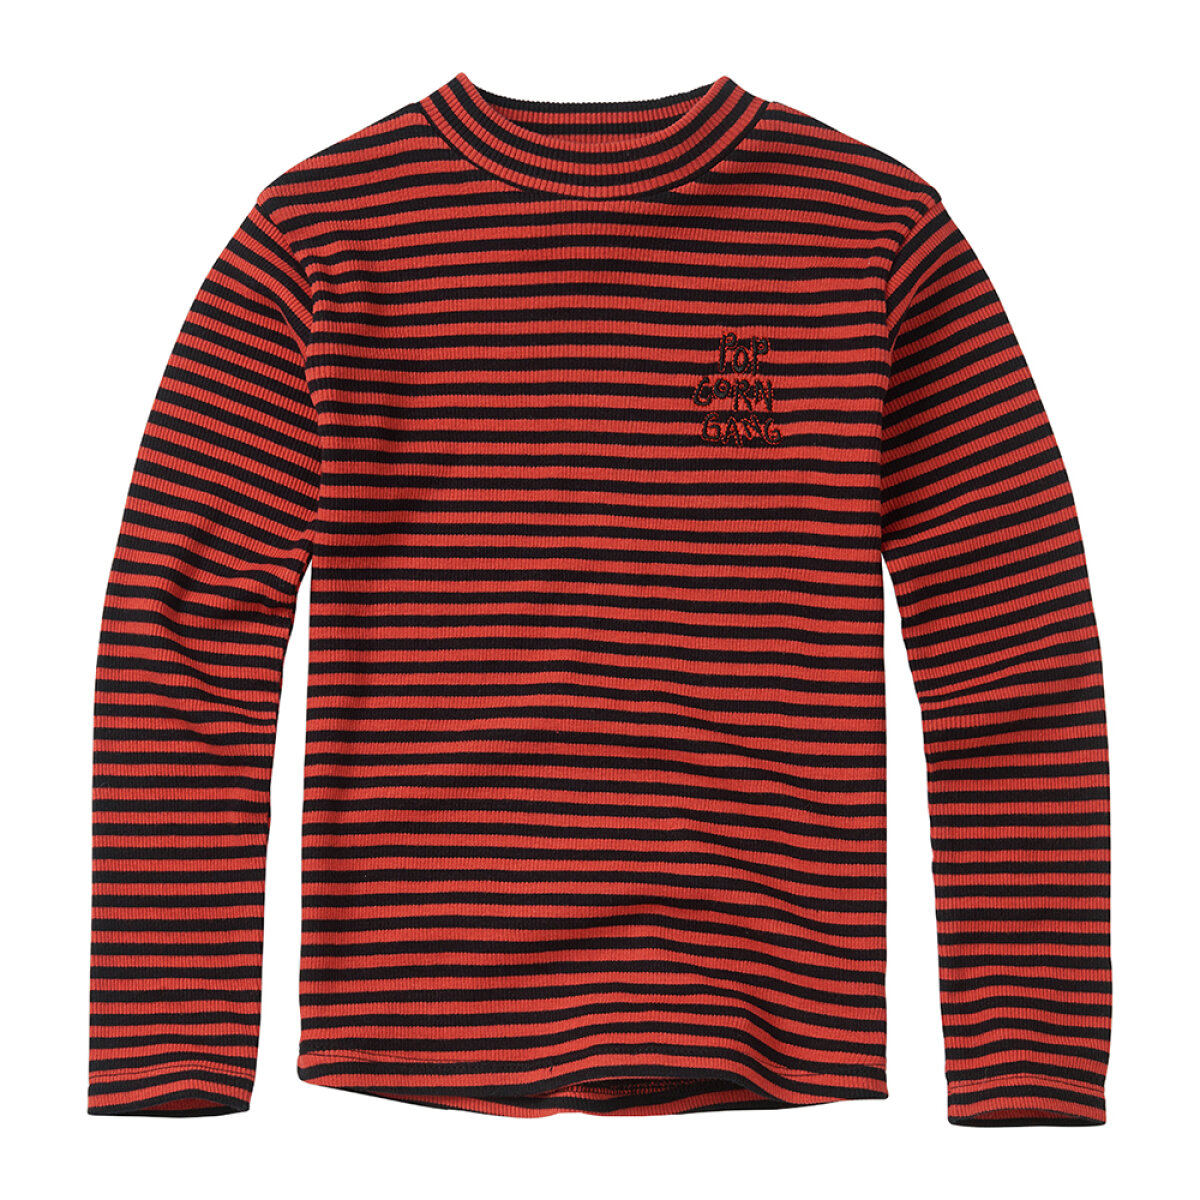 Sproet & Sprout meisjes shirt PS21-585 rood